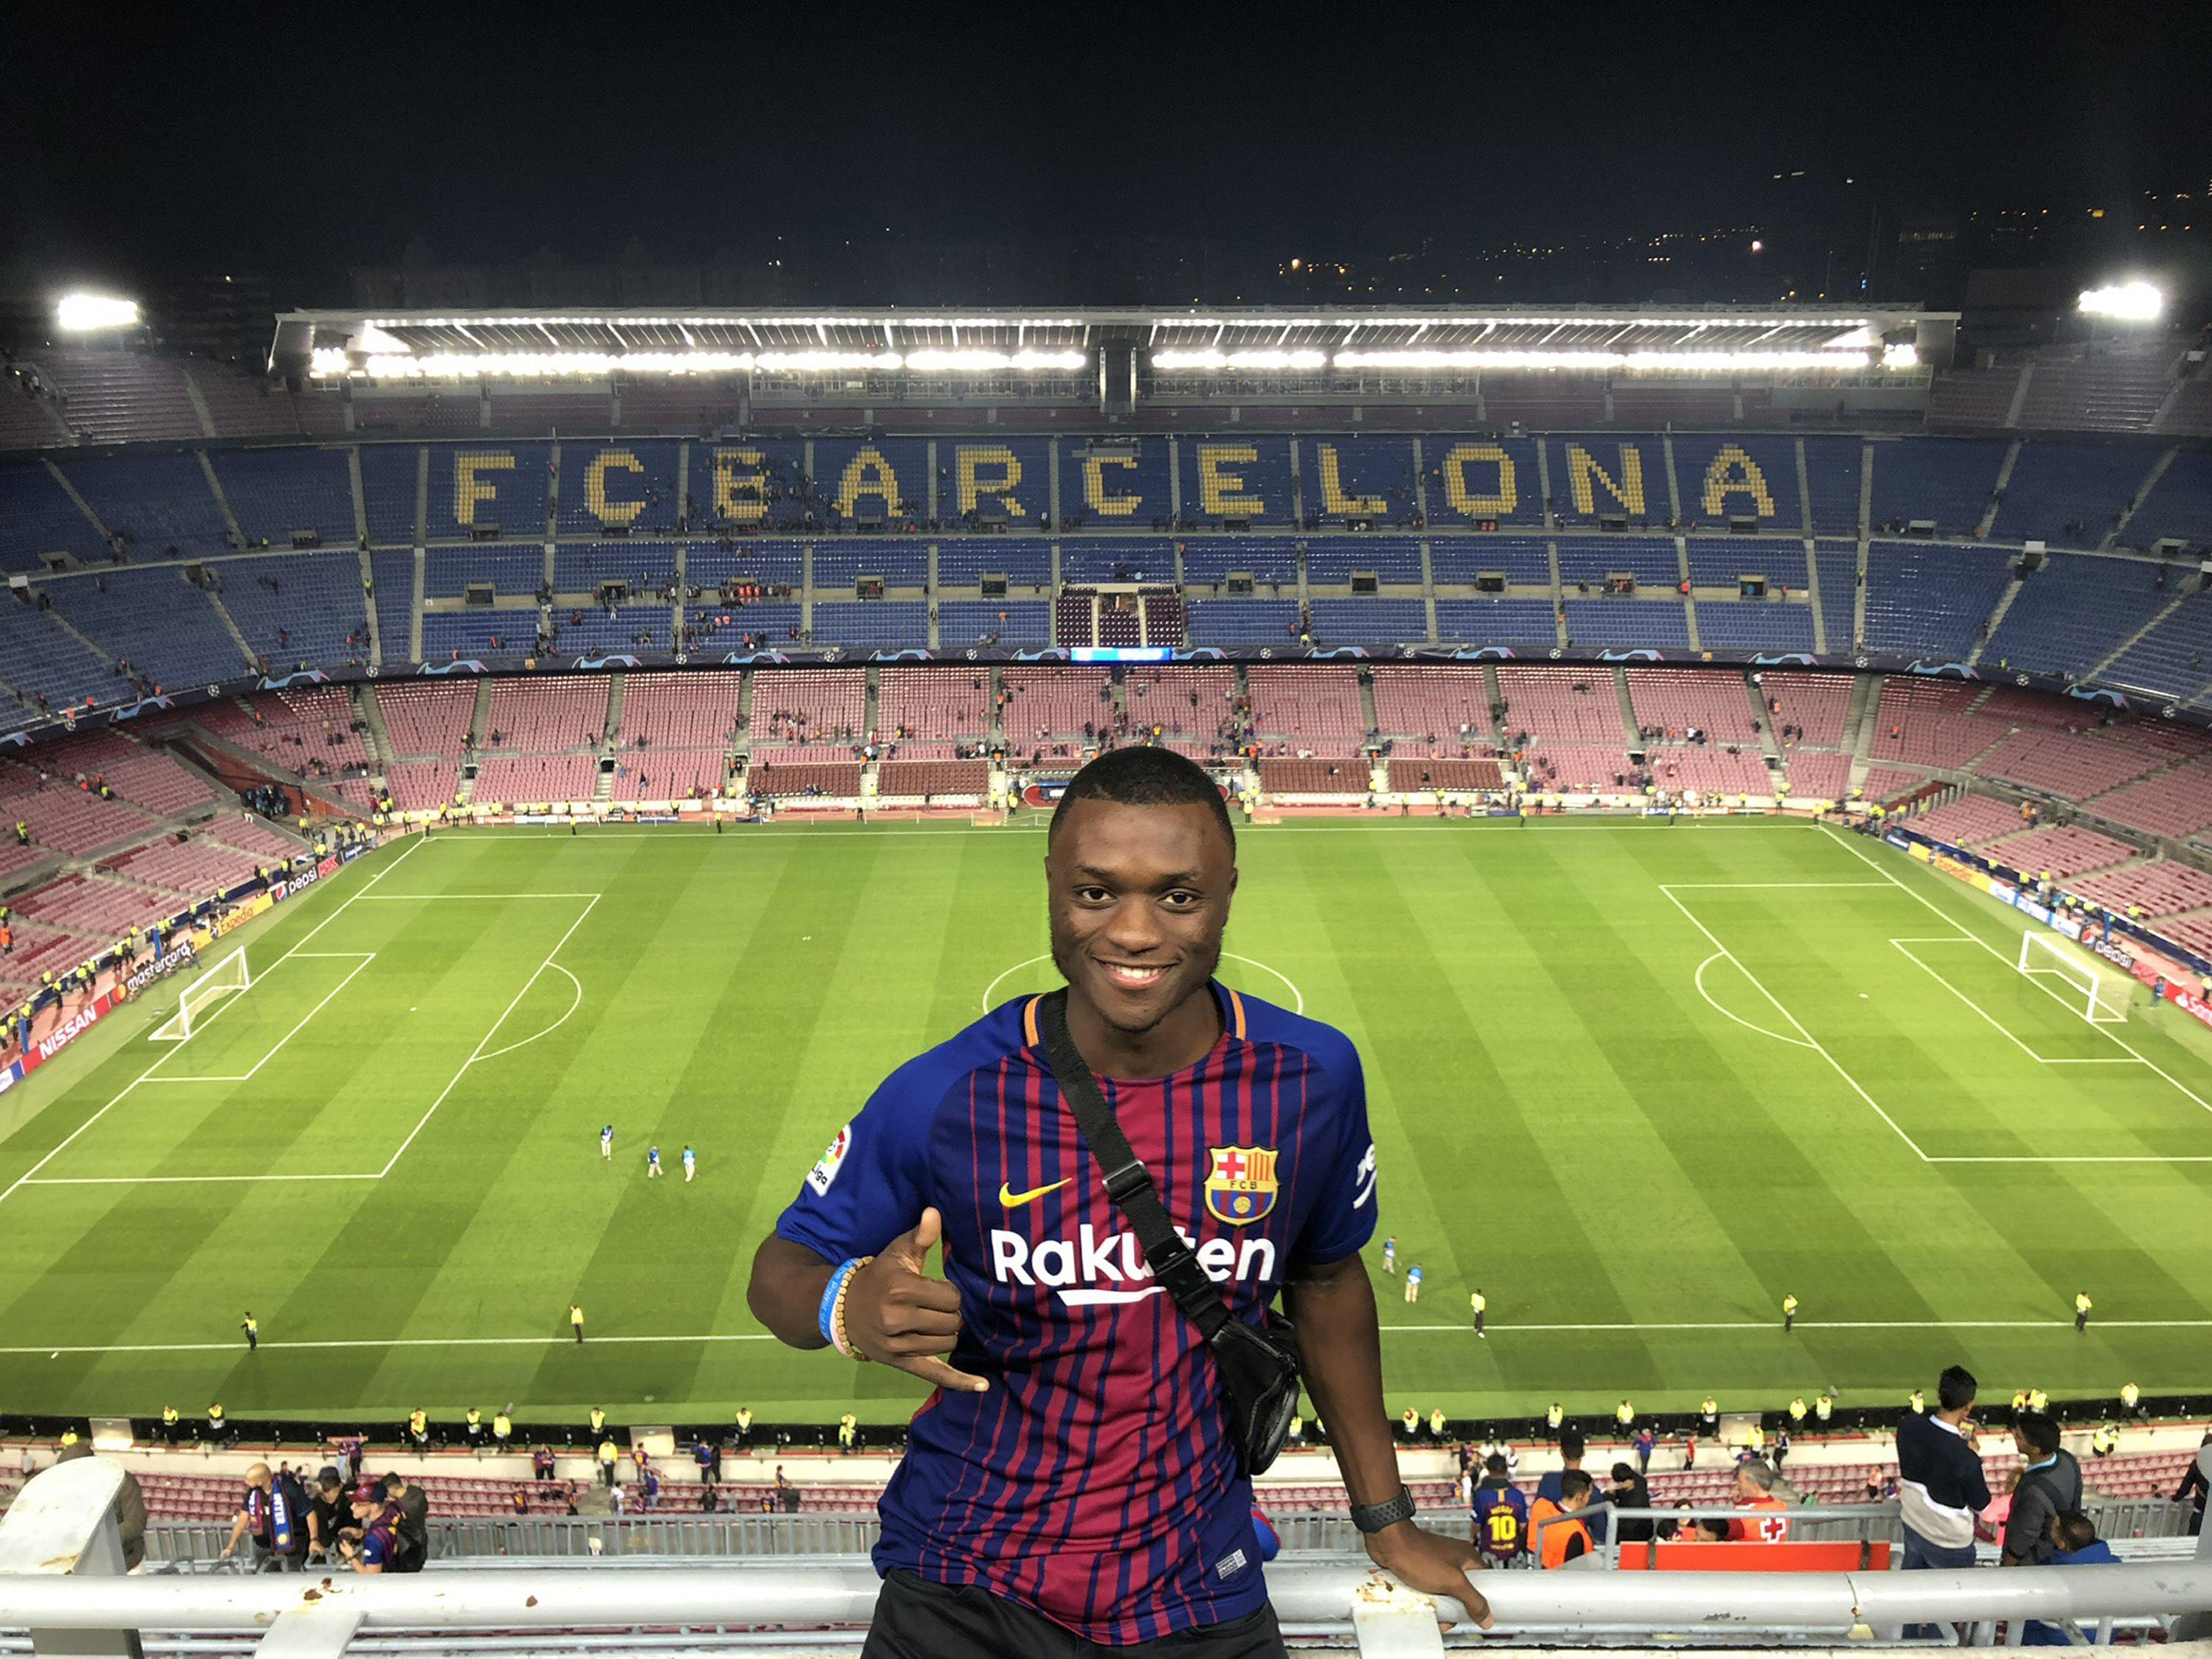 Nyezee Goe prepares to enjoy an FC Barcelona soccer match in Spain while on his study abroad exploration